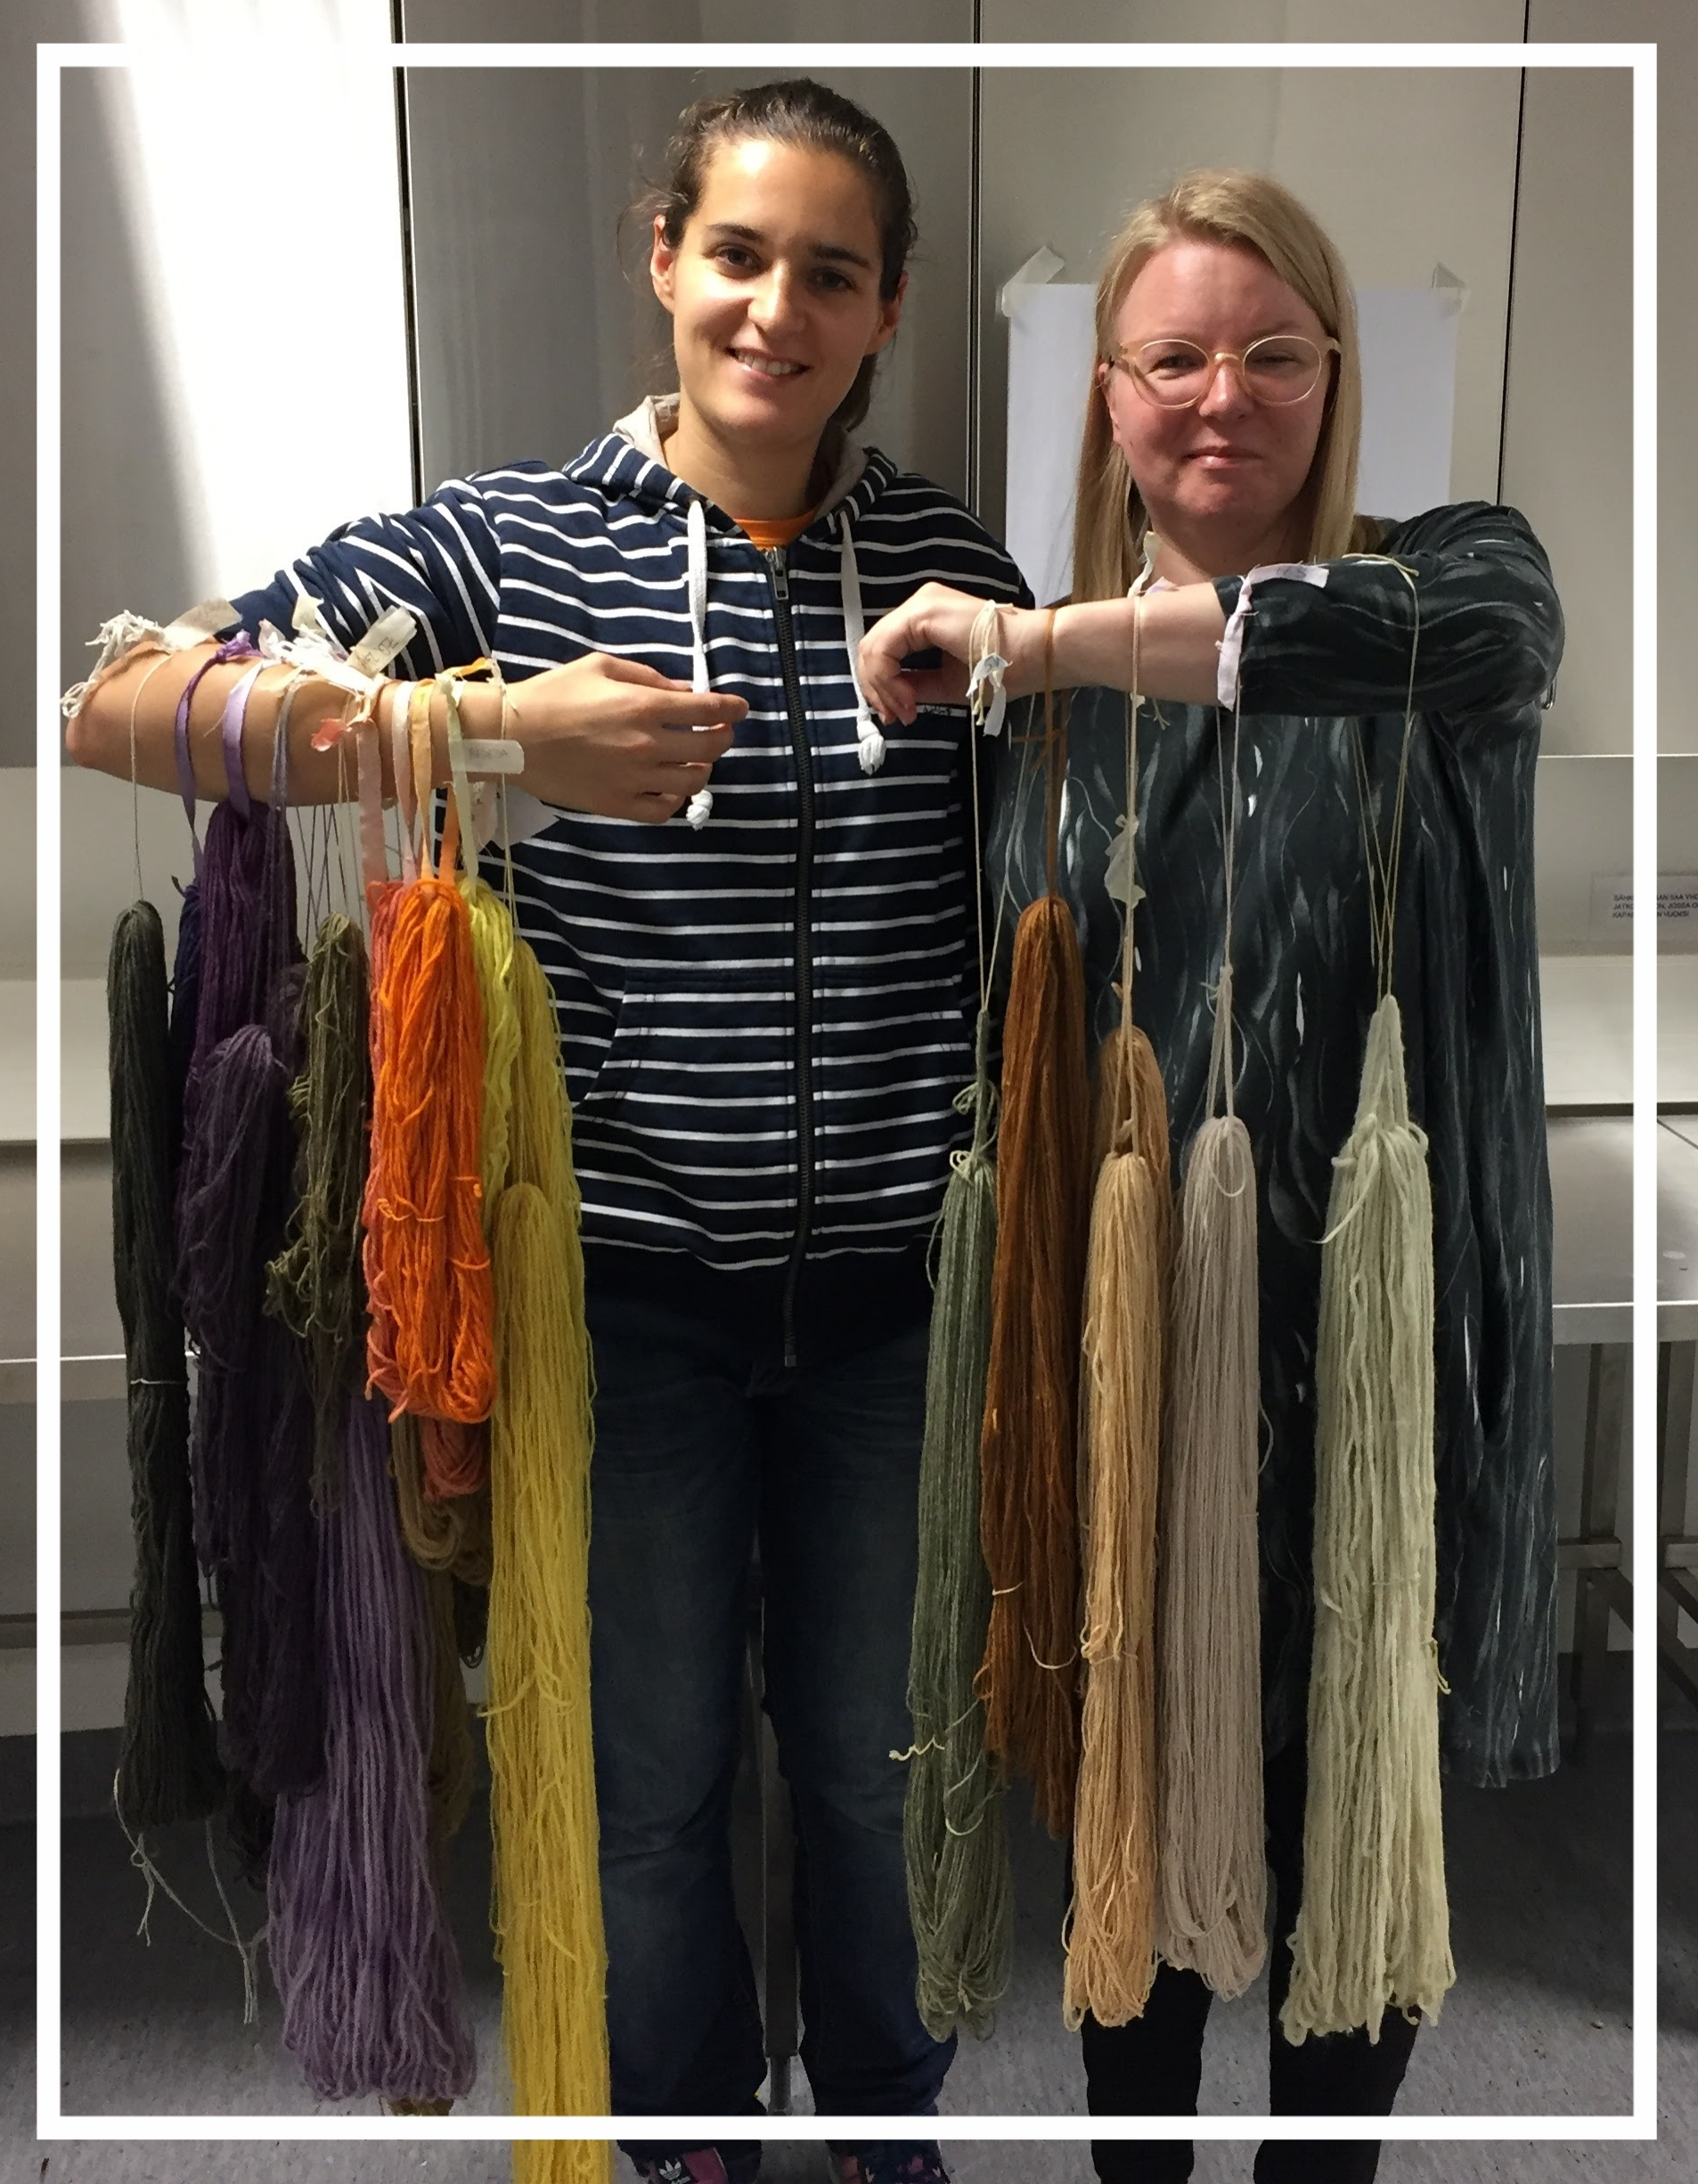 Zoe and Merja during a natural dyeing course in Espoo, Finland.